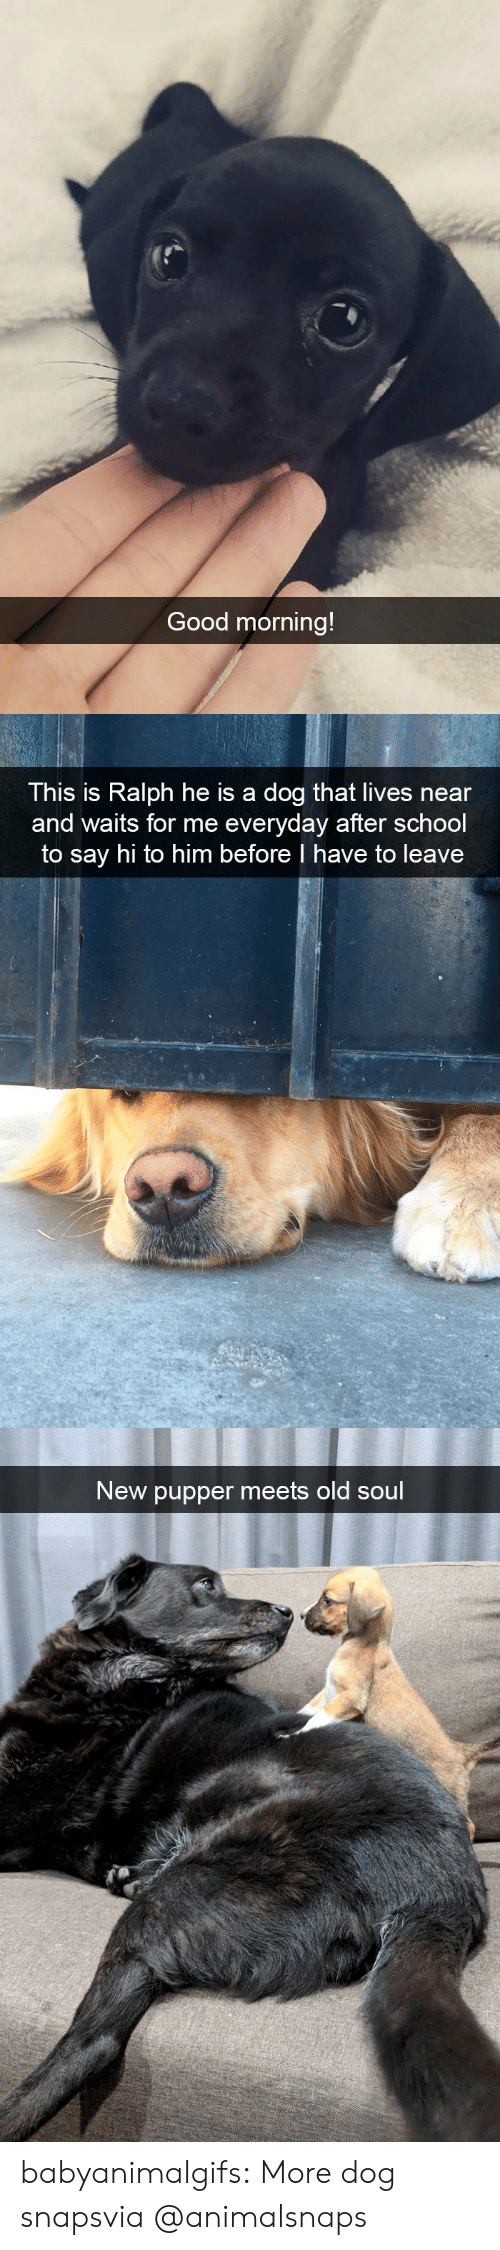 School, Tumblr, and Good Morning: Good morning!   This is Ralph he is a dog that lives near  and waits for me everyday after school  to say hi to him before I have to leave   New pupper meets old soul babyanimalgifs:  More dog snapsvia @animalsnaps​